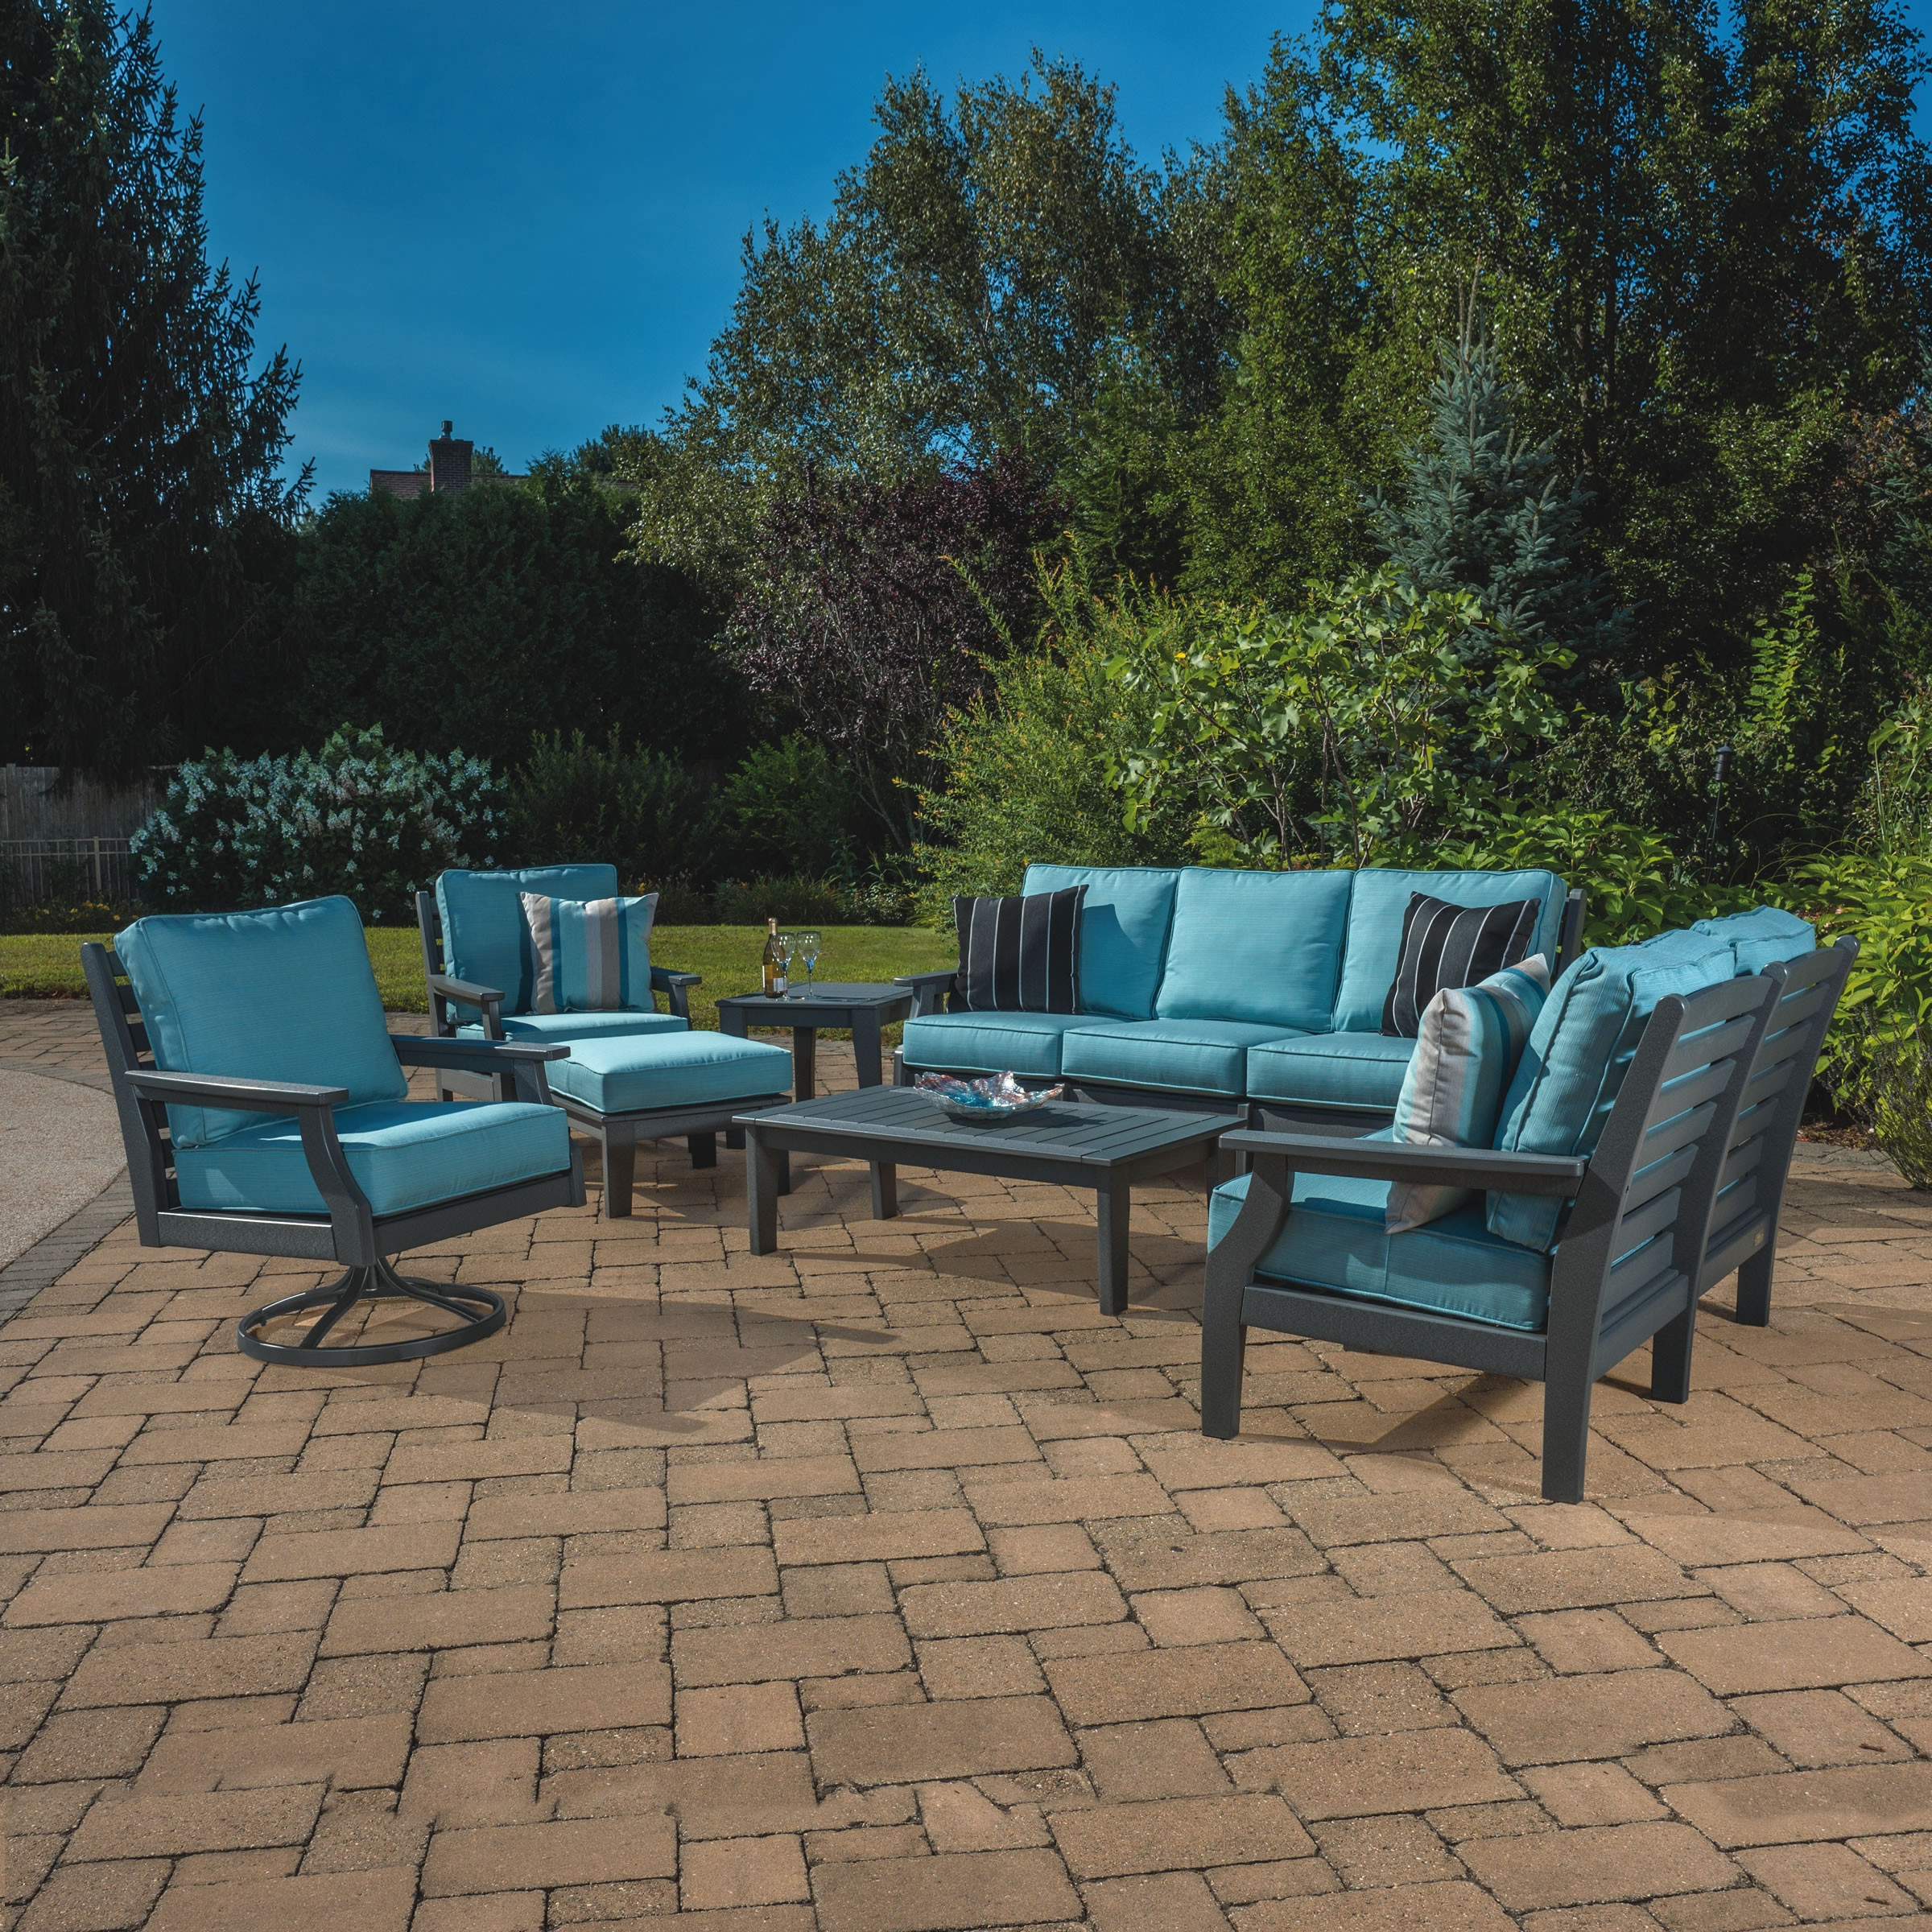 Malibu Outdoor Maywood 7 pc Outdoor Living Set